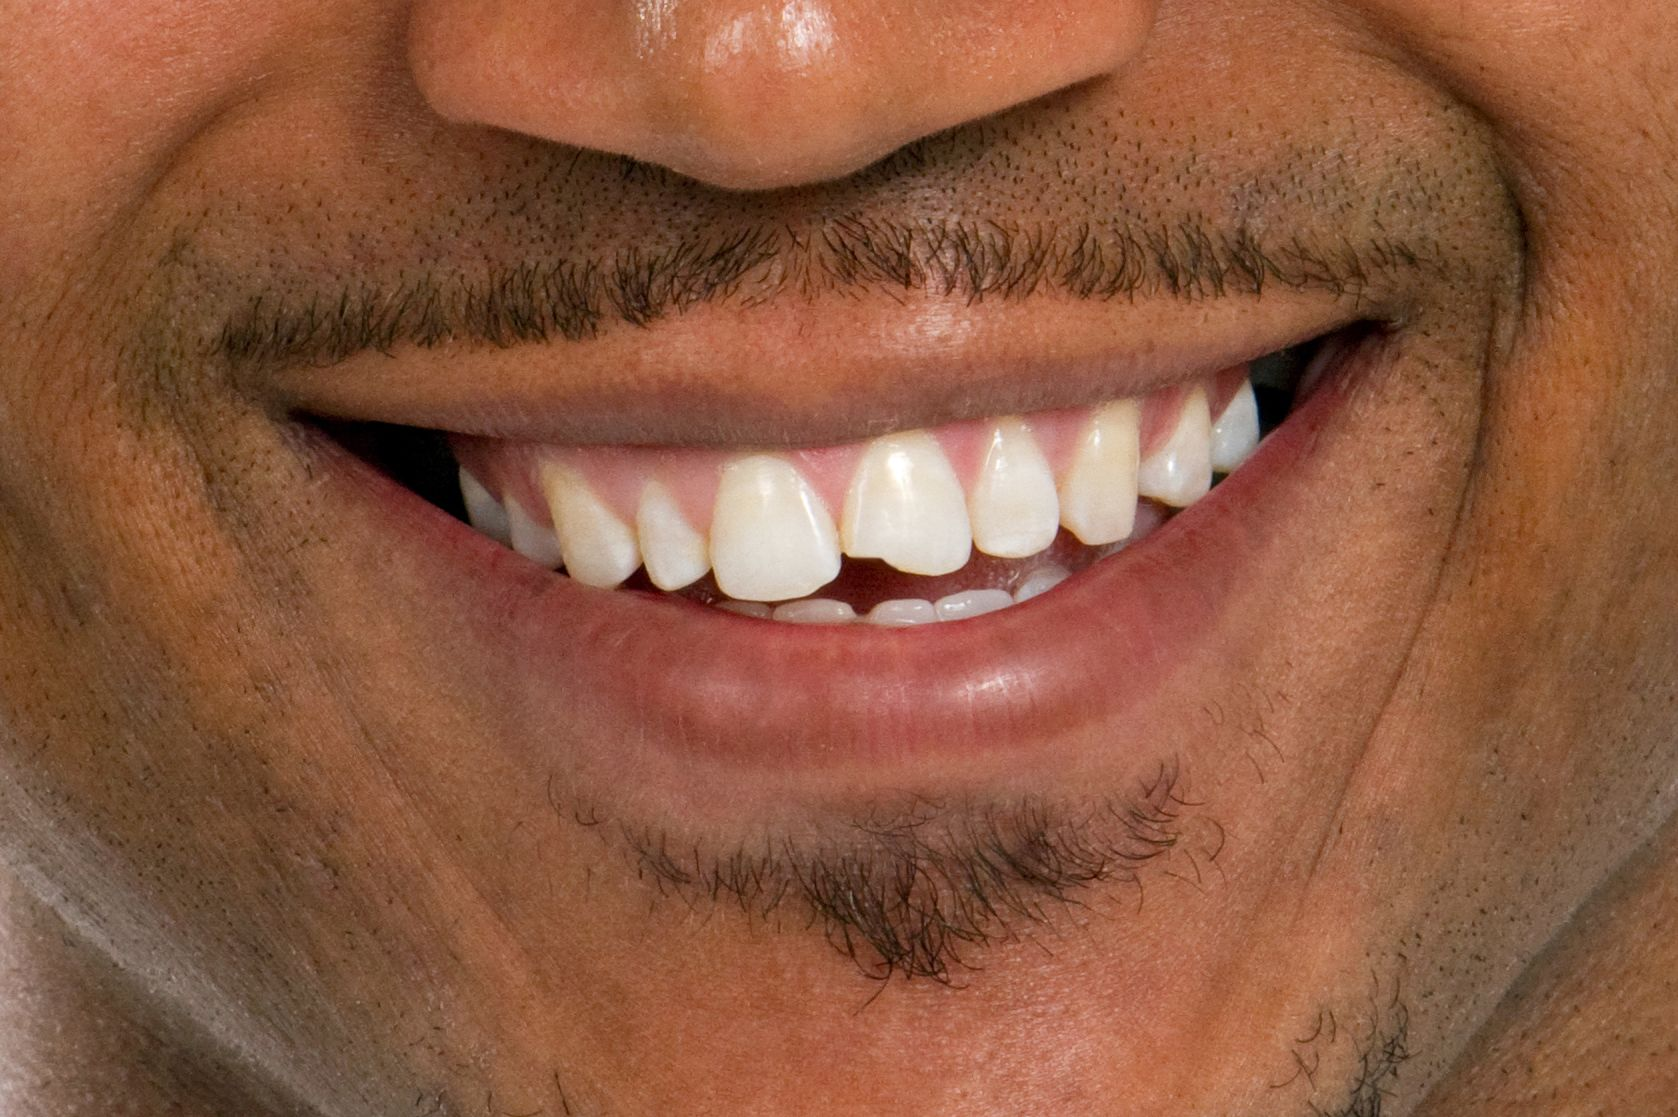 Photo of a smile with a chipped tooth